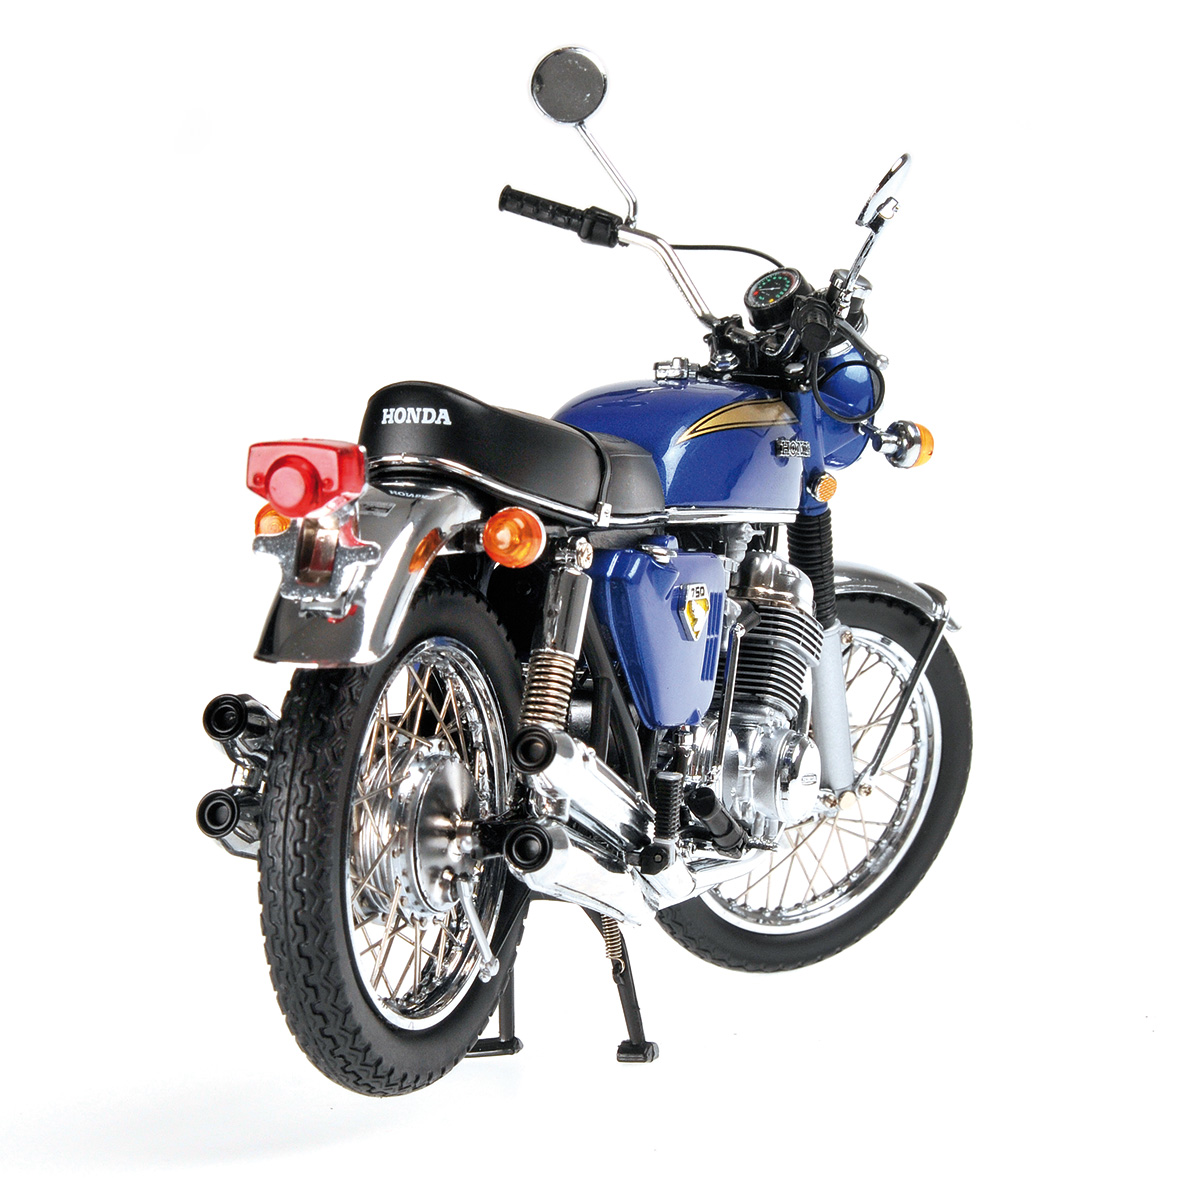 racing scale models honda cb 750 1968 blue by minichamps. Black Bedroom Furniture Sets. Home Design Ideas